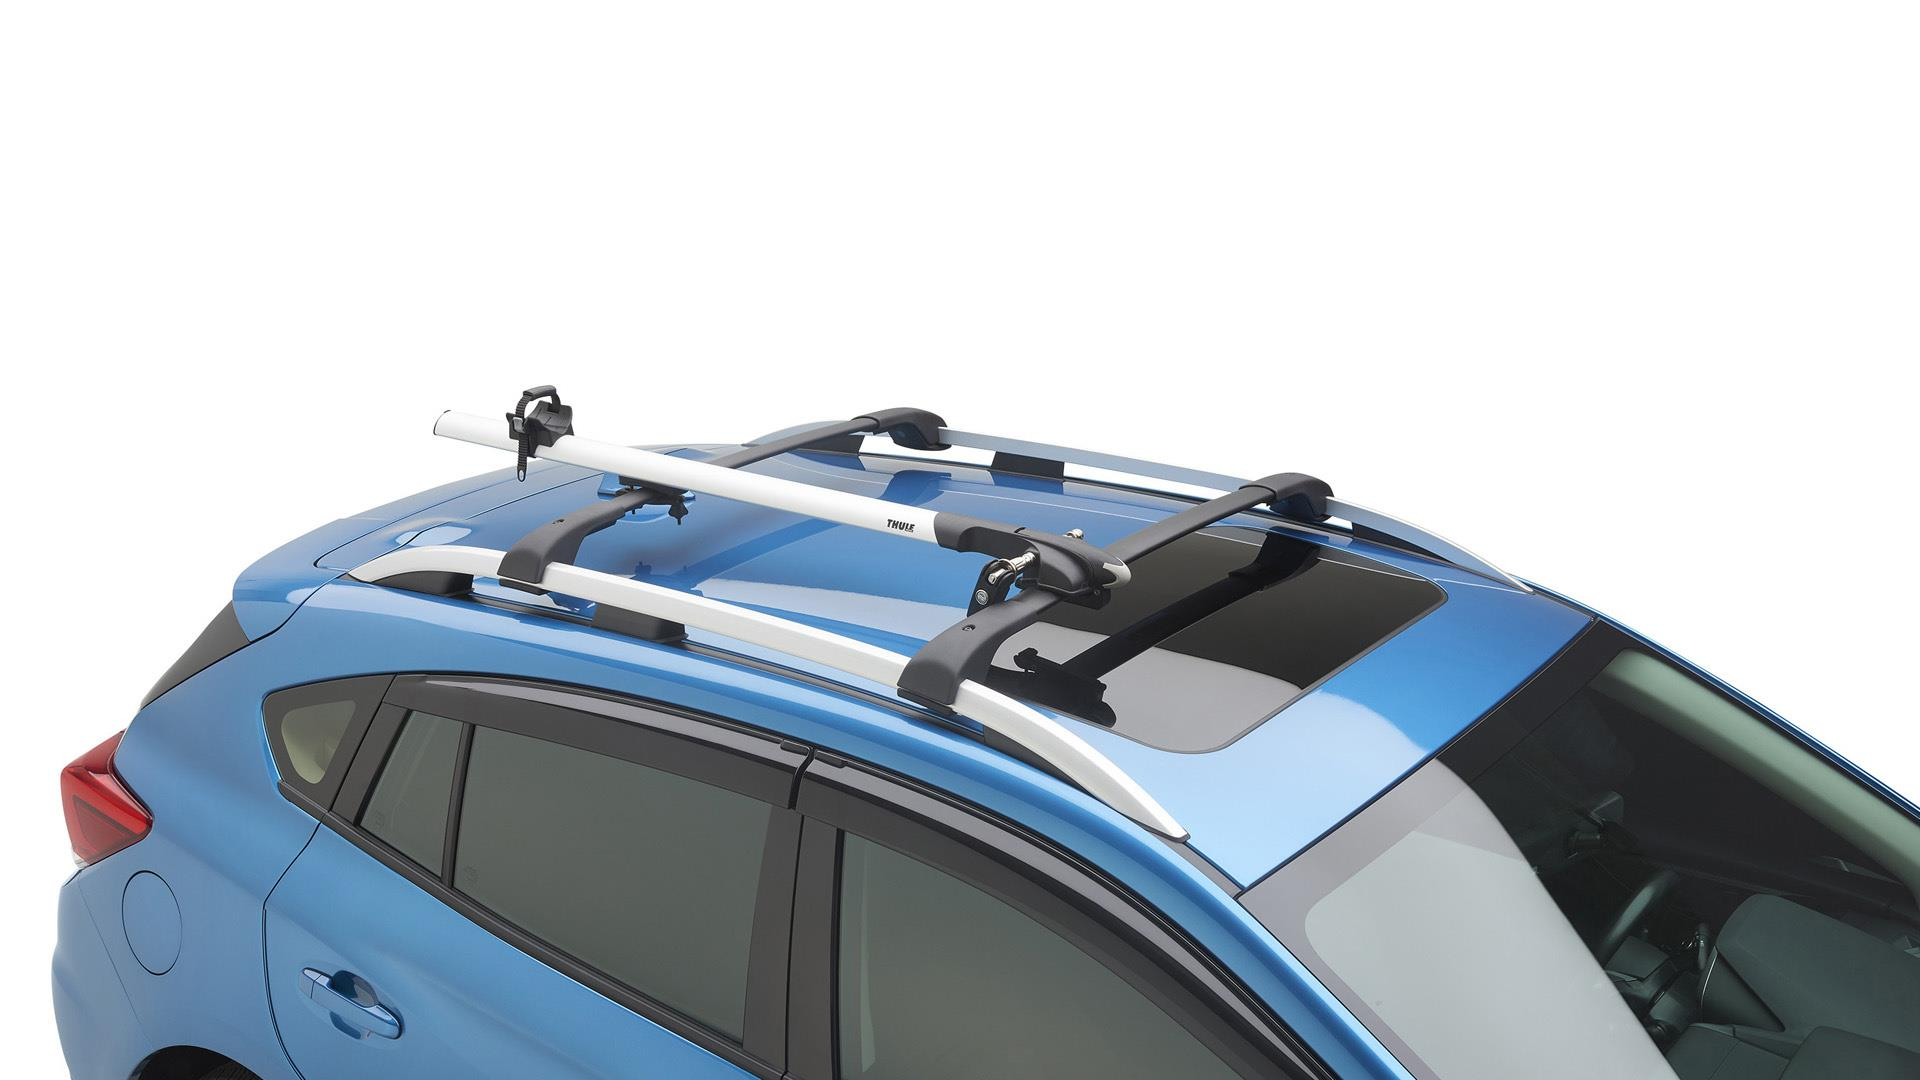 Subaru Impreza Fork Mount Bike Carrier Thule Wheel